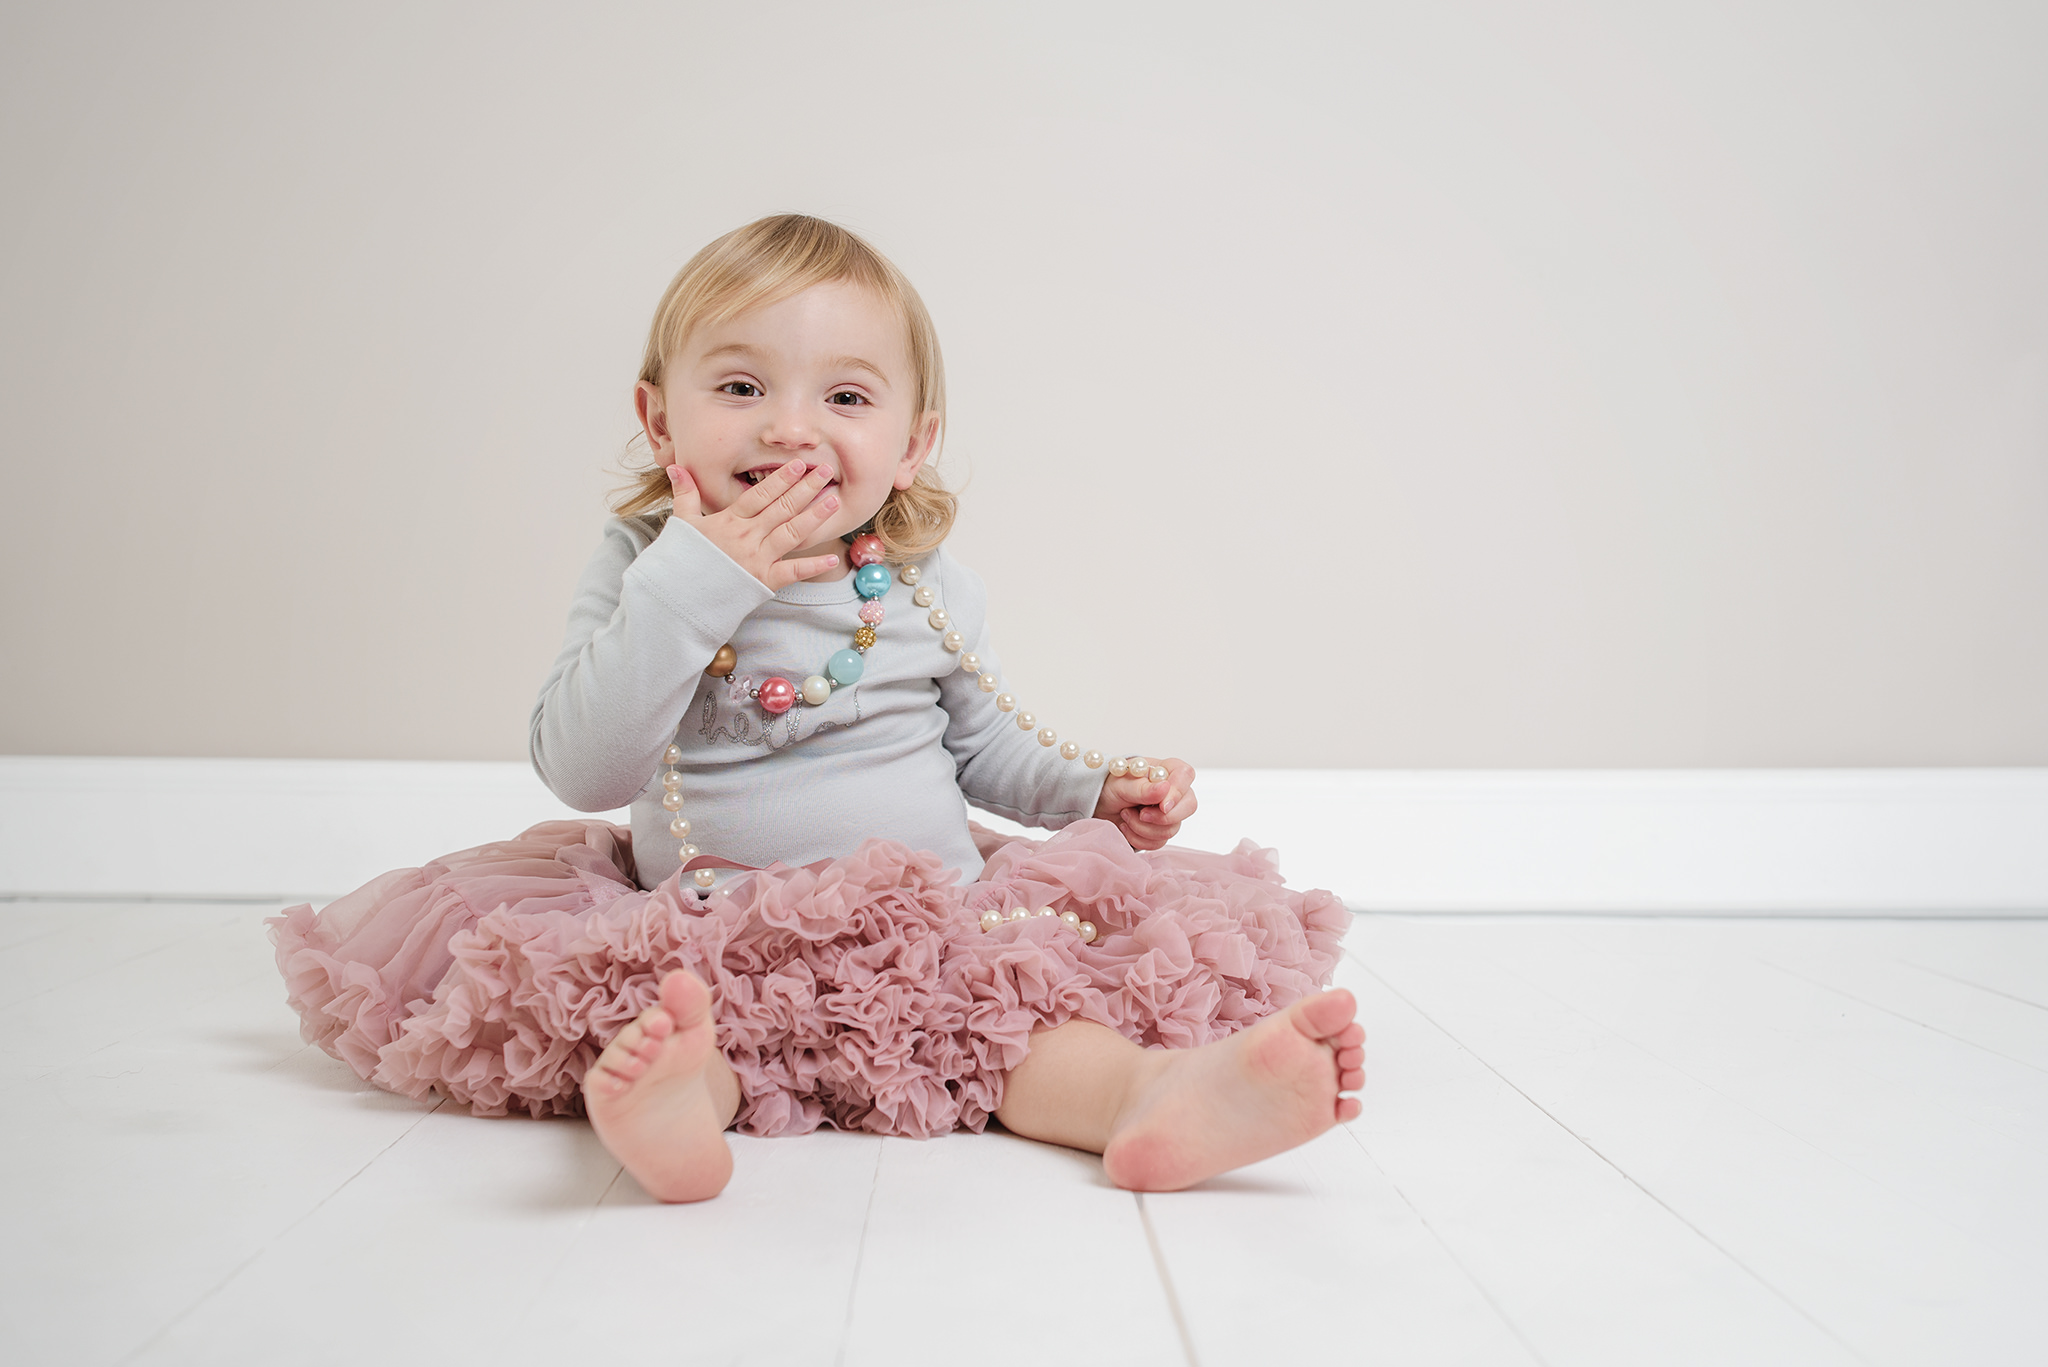 little girl in pink tutu and grey t shirt in the studio. One hand over her mouth with a cheeky smile | Children's Photographer Aylesbury Buckinghamshire and Thame Oxfordshire